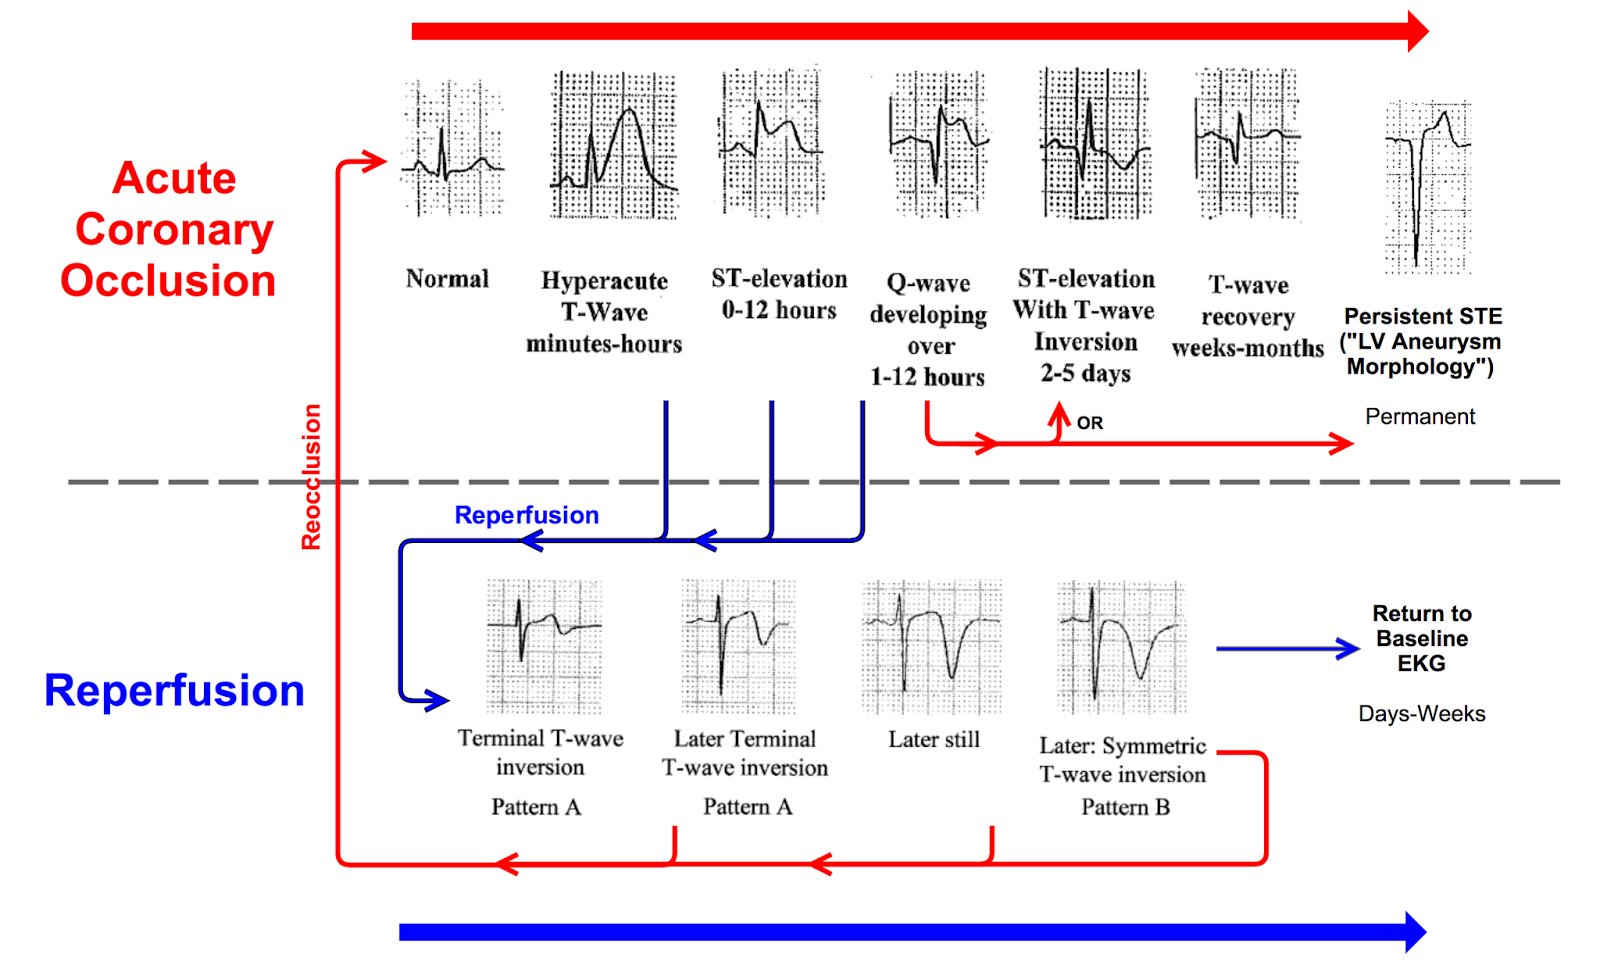 Dr smiths ecg blog shoulder pain after lifting a heavy box diagnosis may be missed or delayed because his st segments are not appreciated as different from his baseline ecg which will now have ste forever pooptronica Images